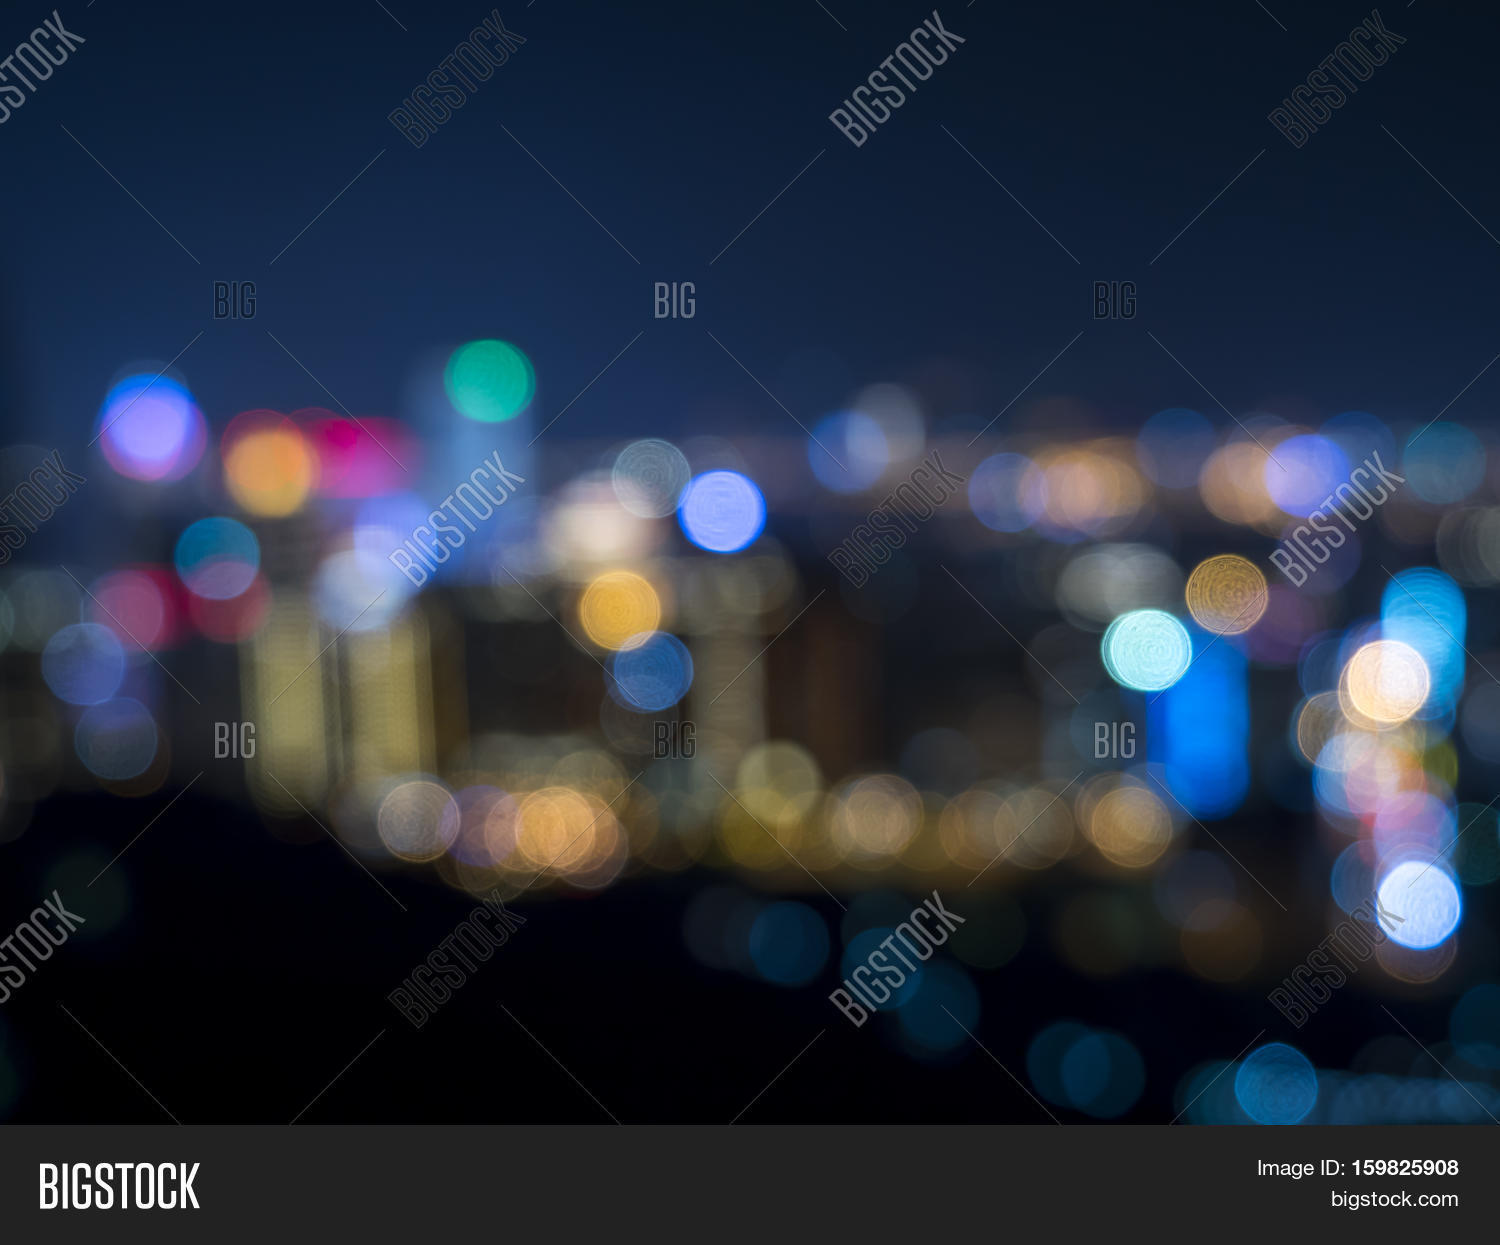 Night Light Bokeh Blur Image Photo Free Trial Bigstock